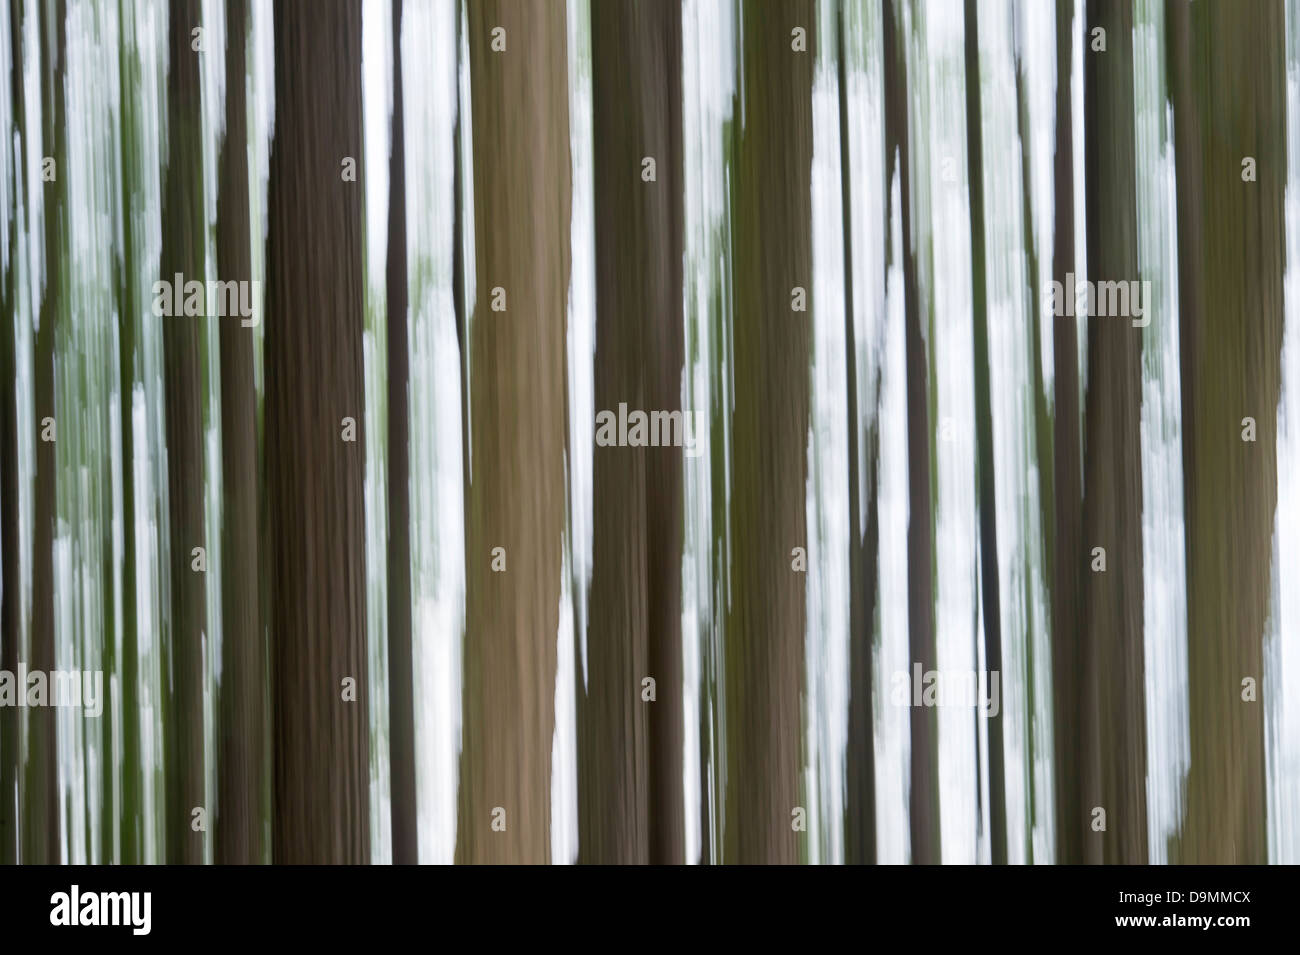 tree, trees, abstract, wood, motion, blur - Stock Image